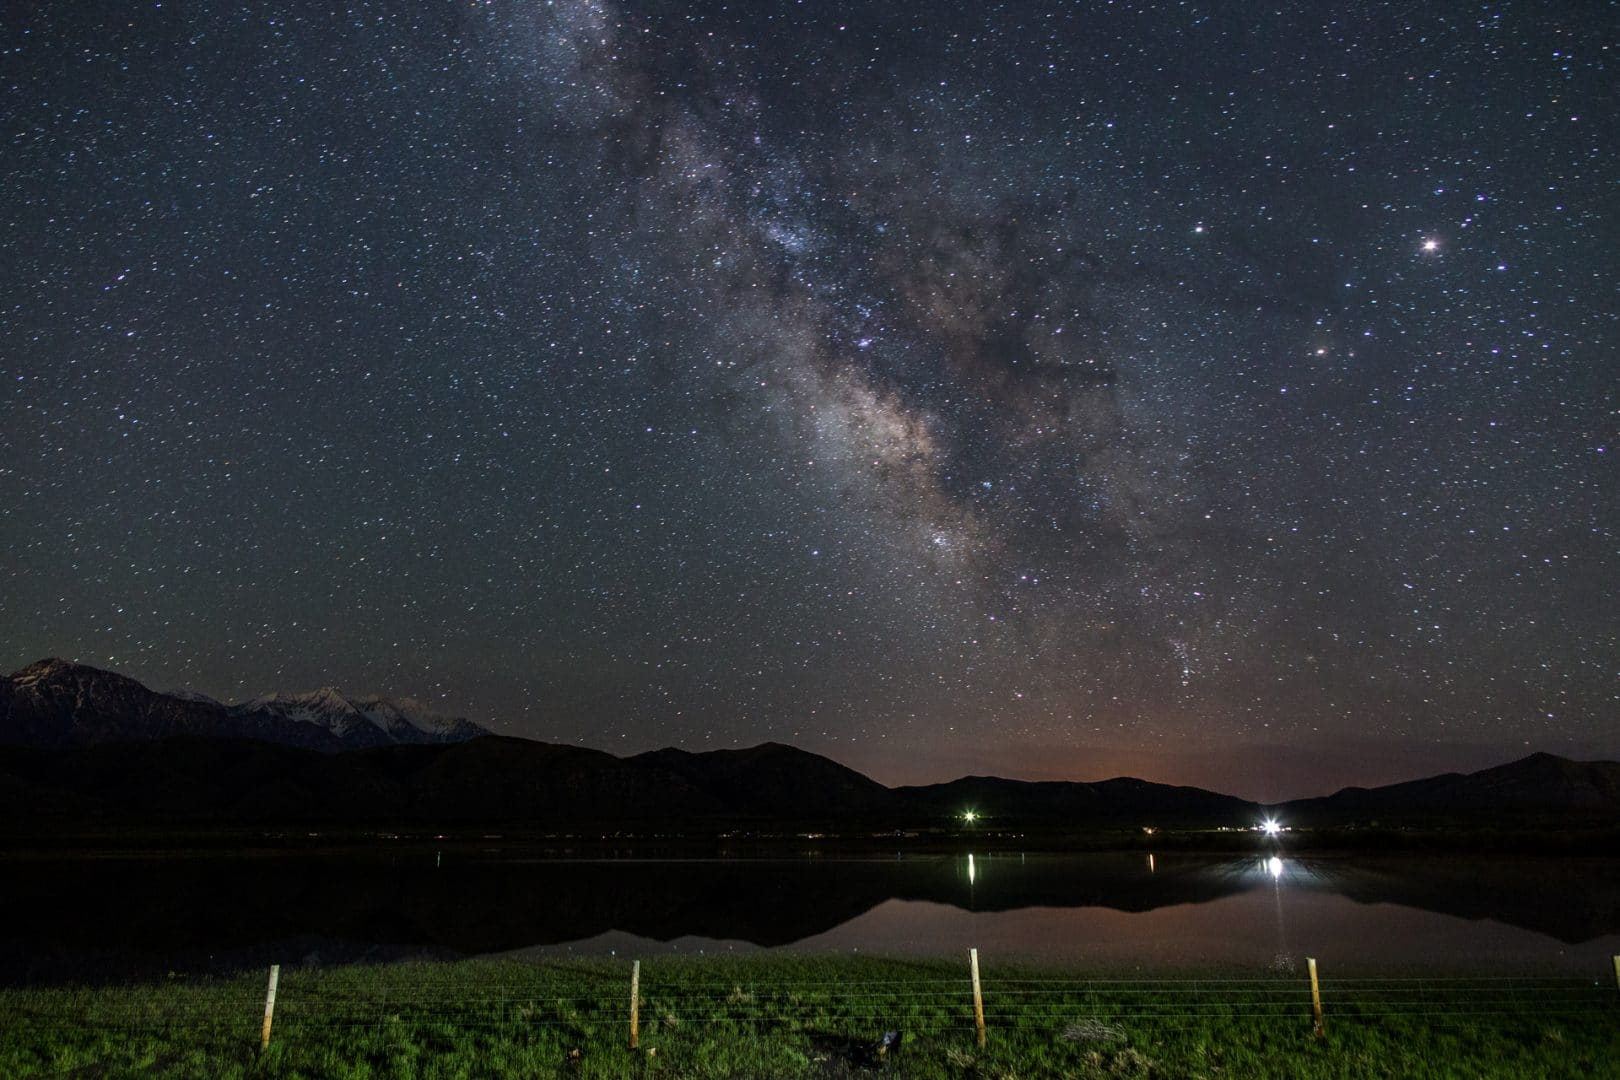 Boring Milky Way composition over some water and distant mountains with nothing of interest in the foreground.